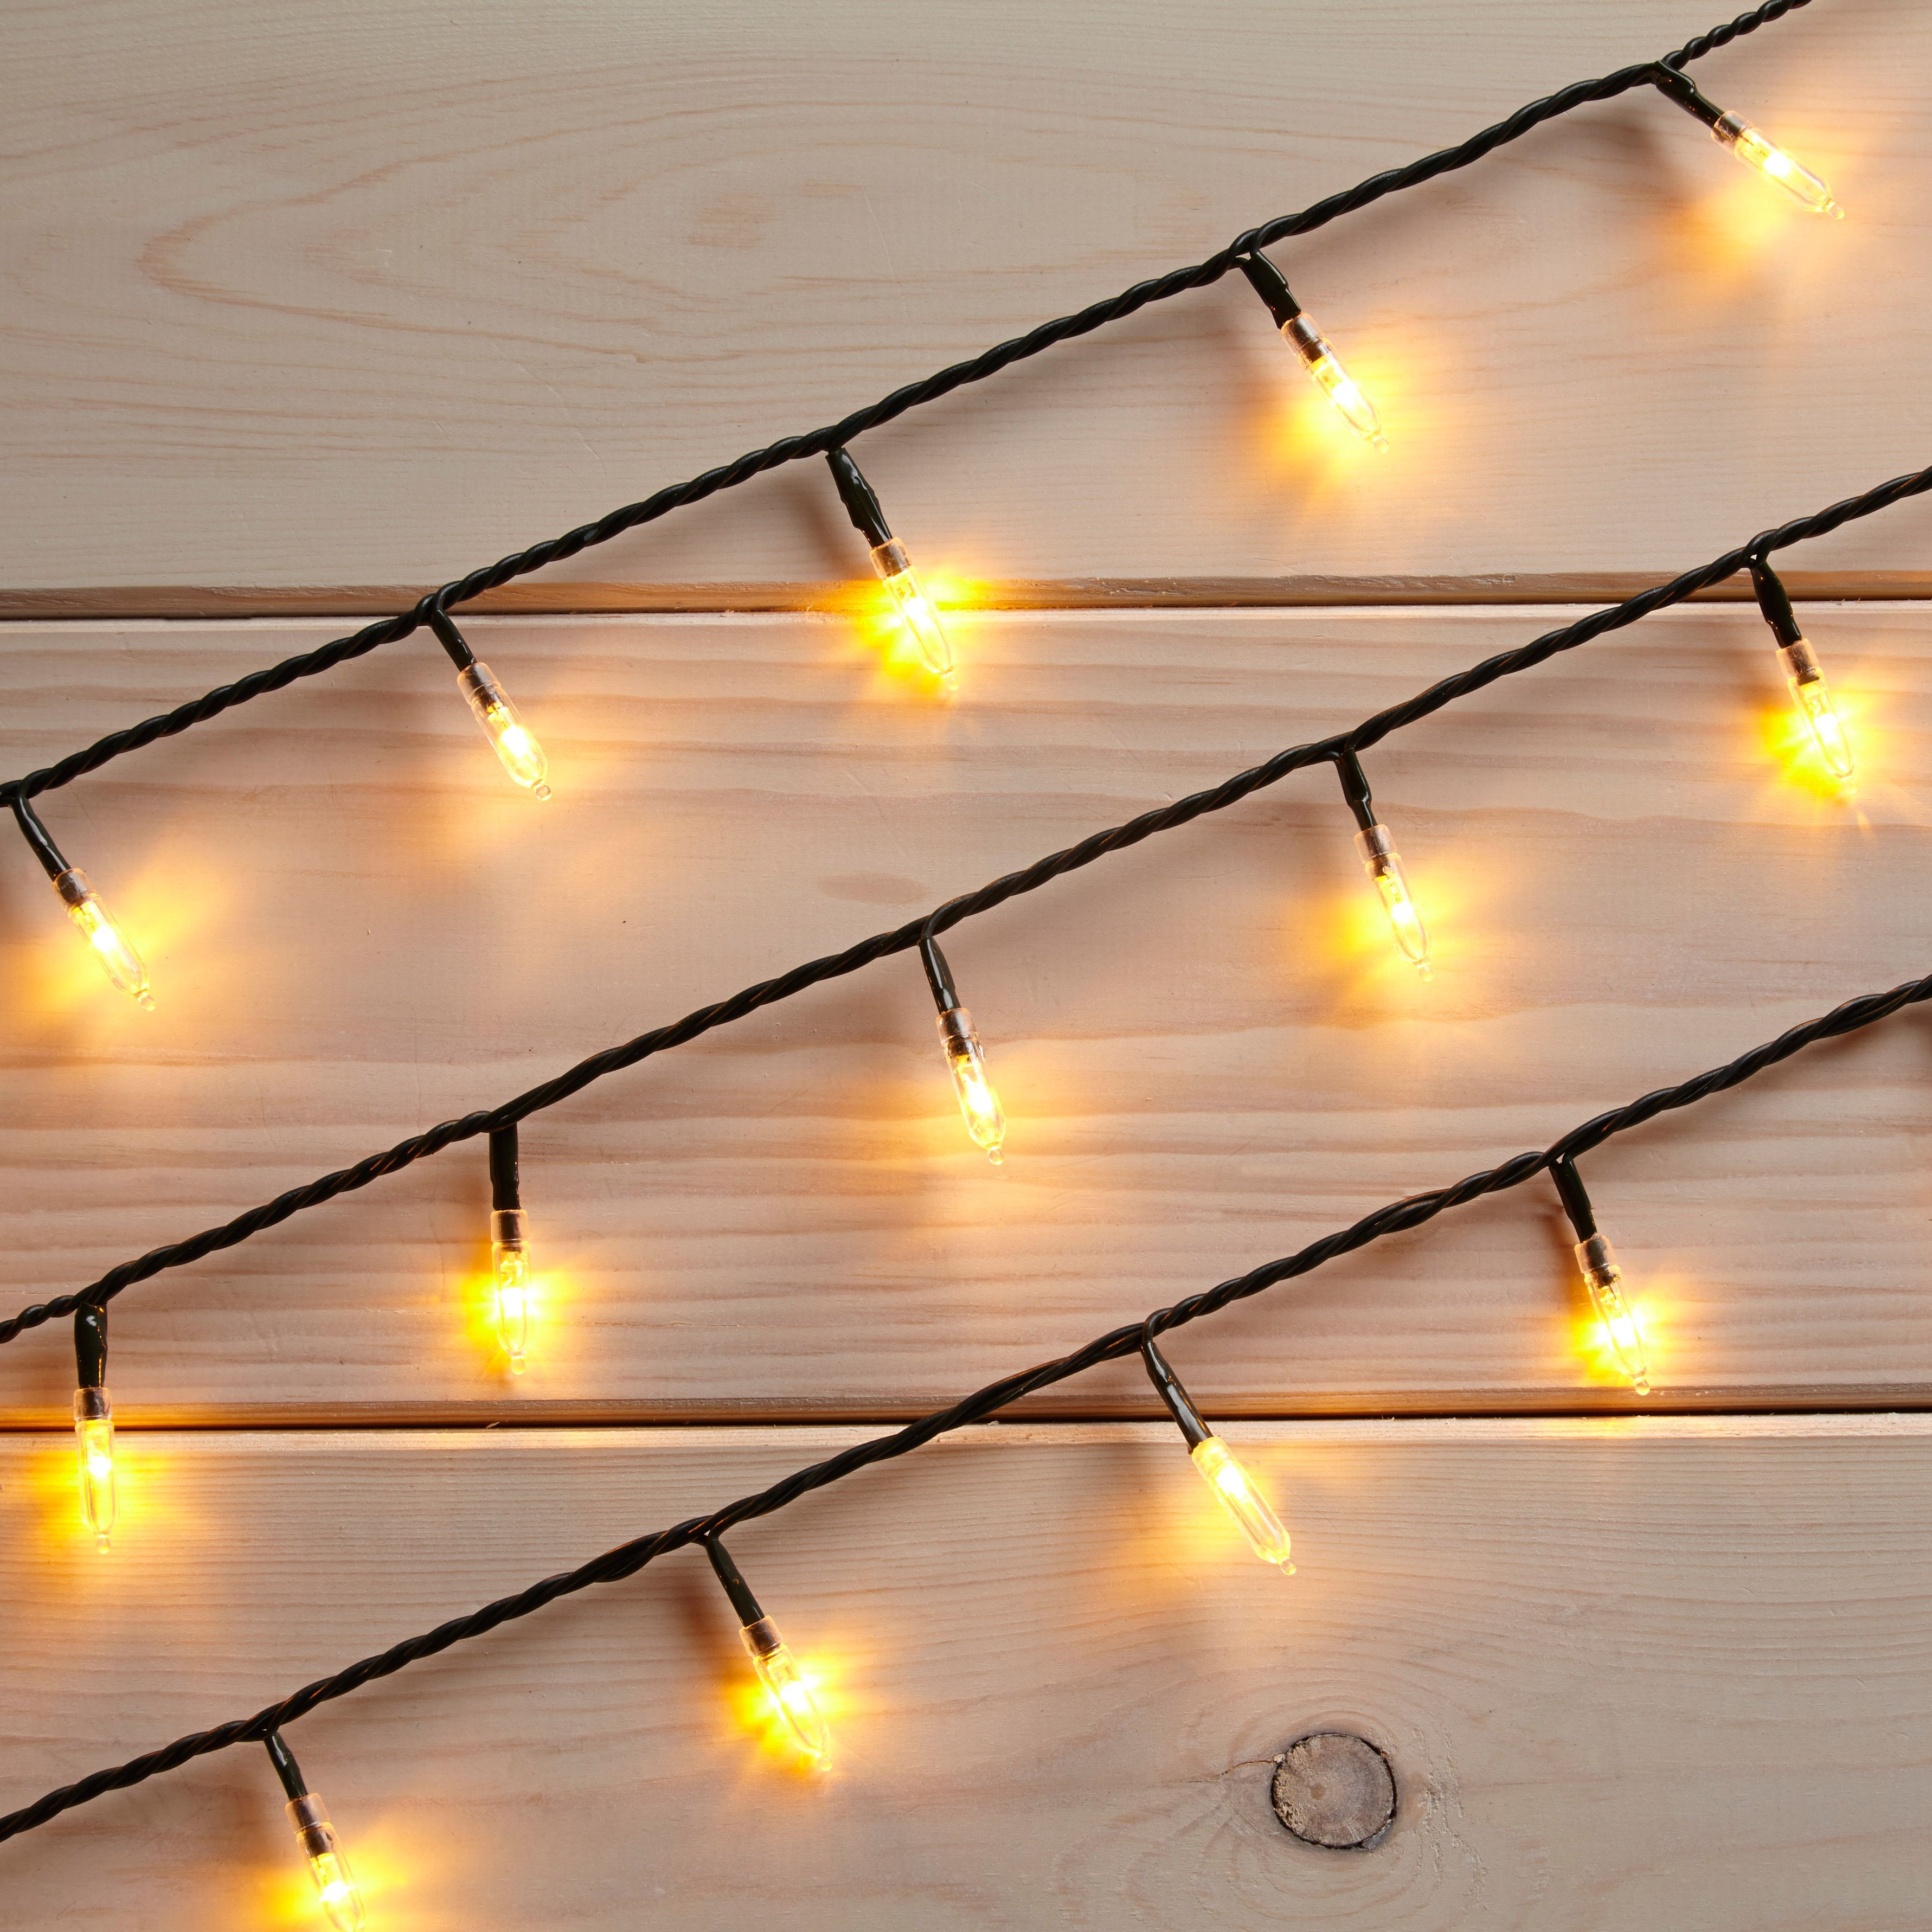 Led String Lights Diy : 100 White LED Fairy String Lights Departments DIY at B&Q